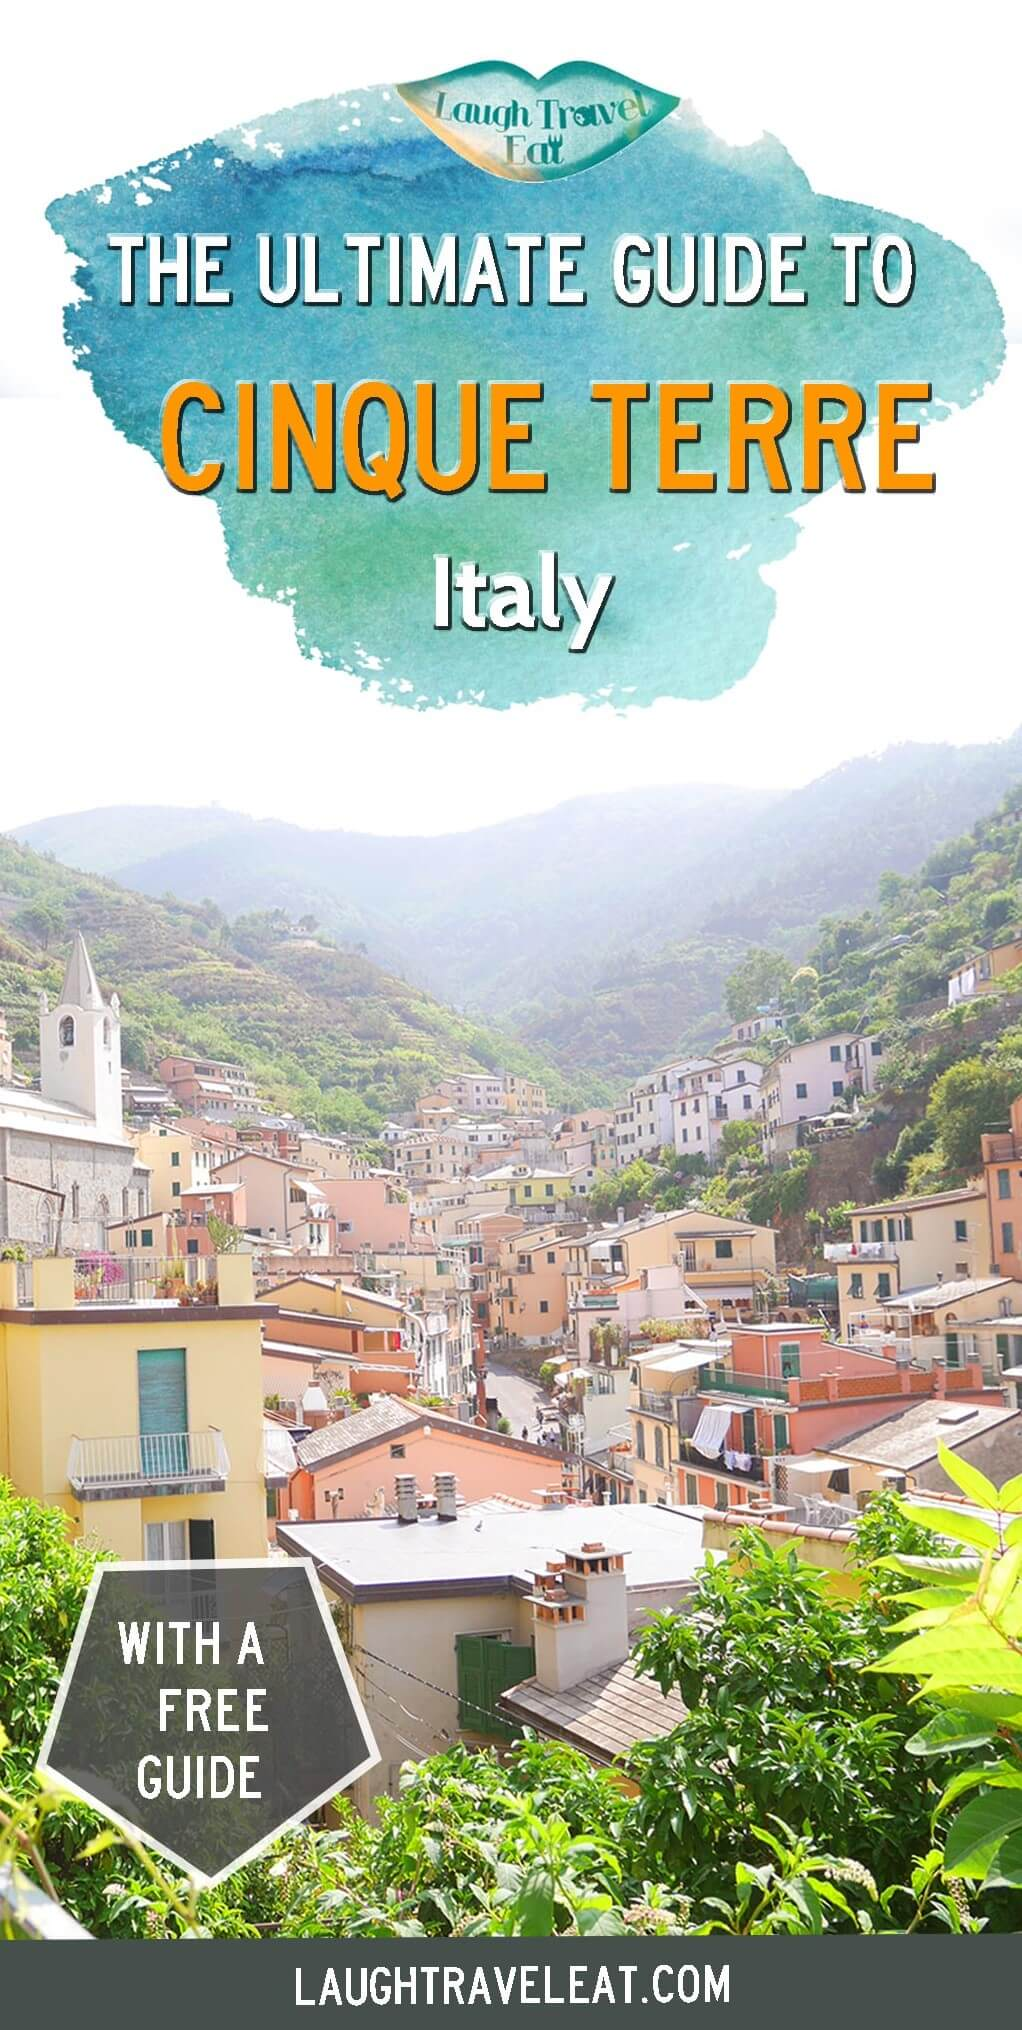 Cinque Terre is a UNESCO world heritage site. Known for its 5 picturesque villages, rugged cliff and ocean. Here's a guide for you: